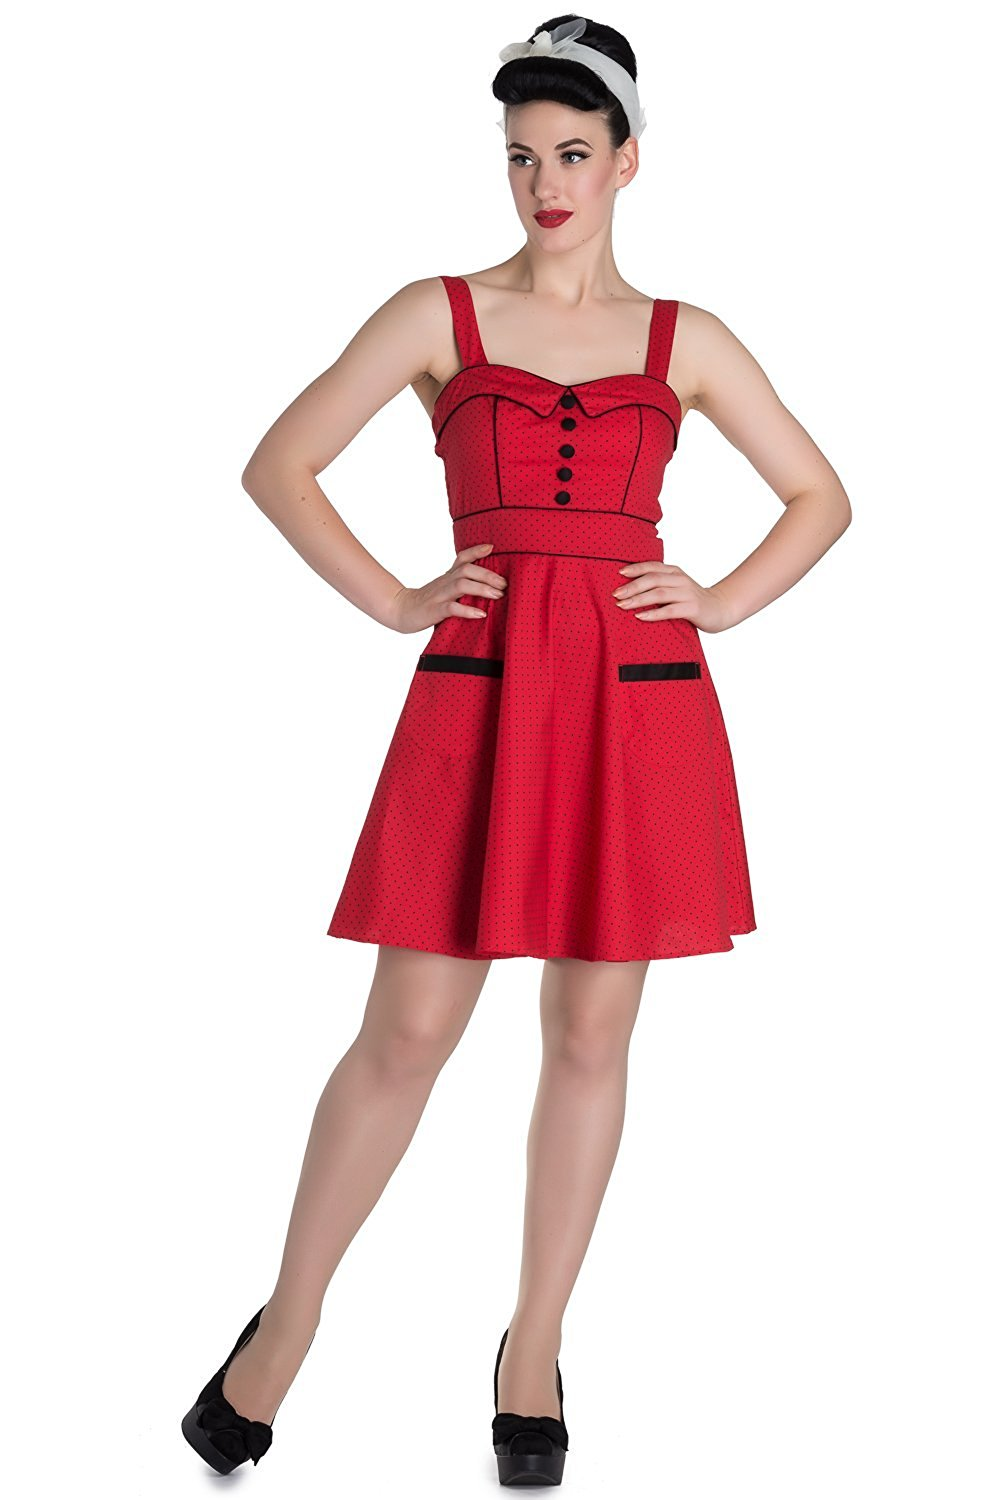 cc140a3d165 Get Quotations · Hell Bunny Red Vanity Mini Pinup Rockabilly Dress